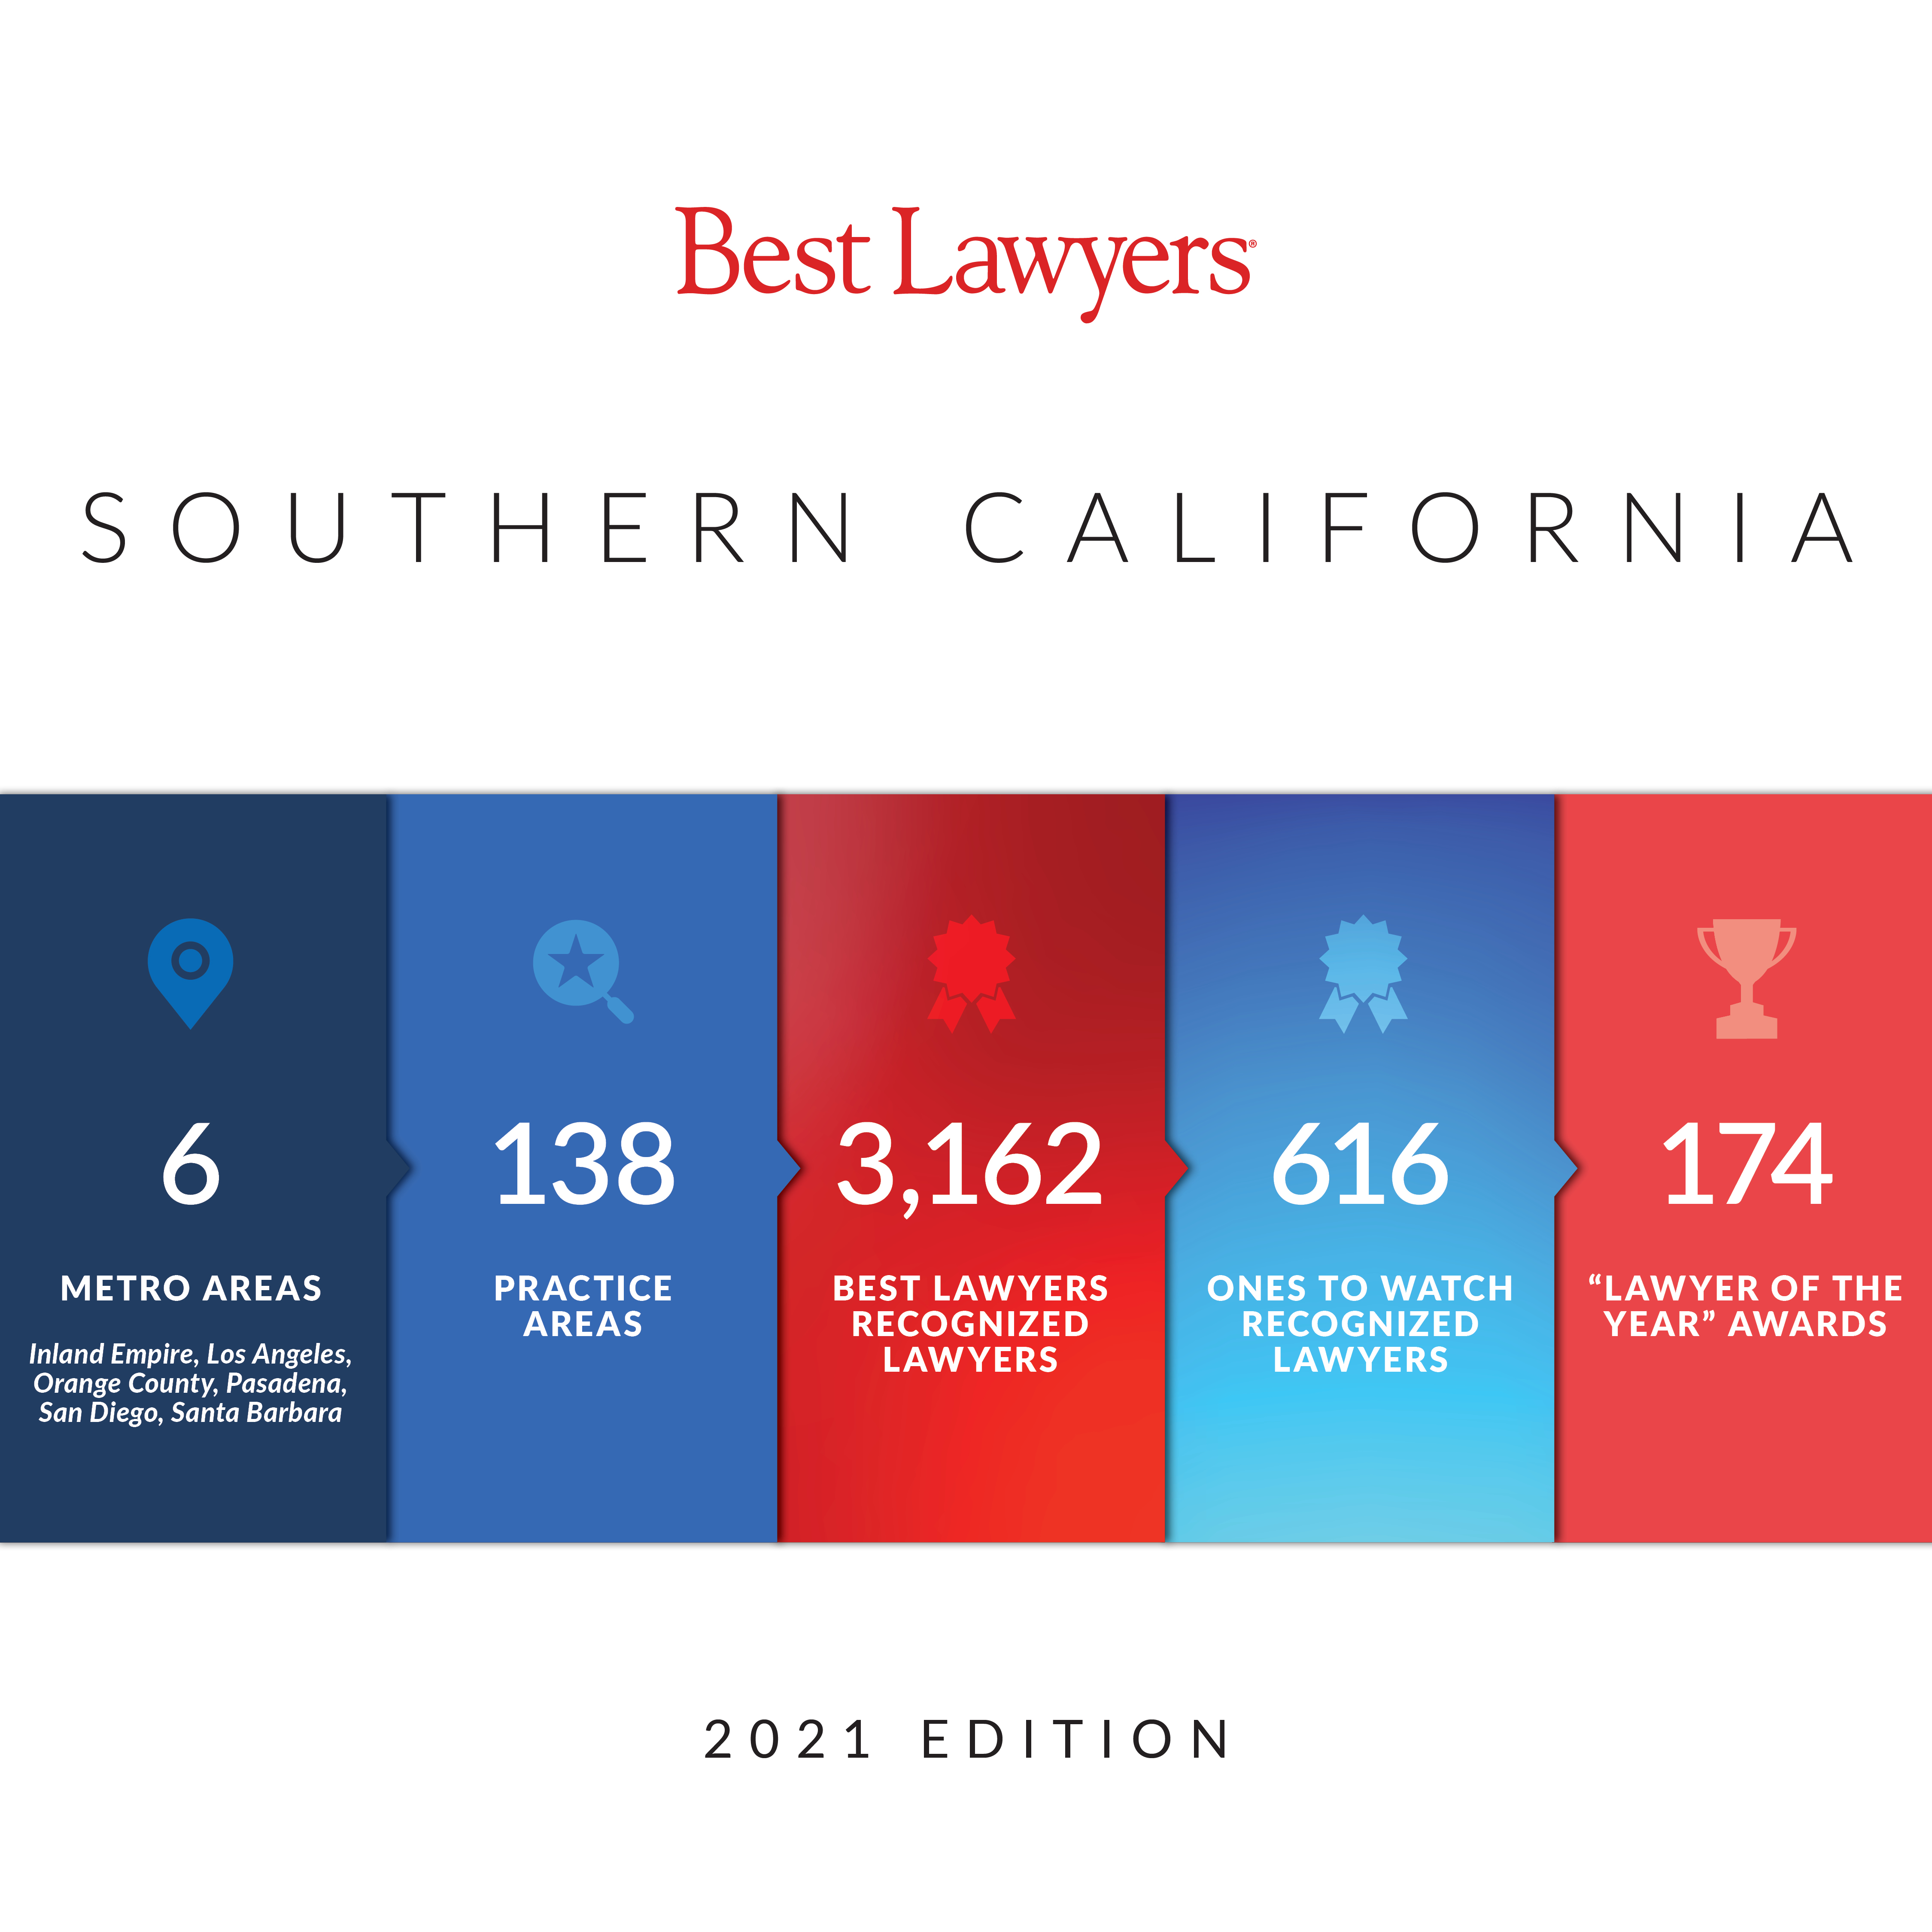 2021 Best Lawyers Southern California Stats